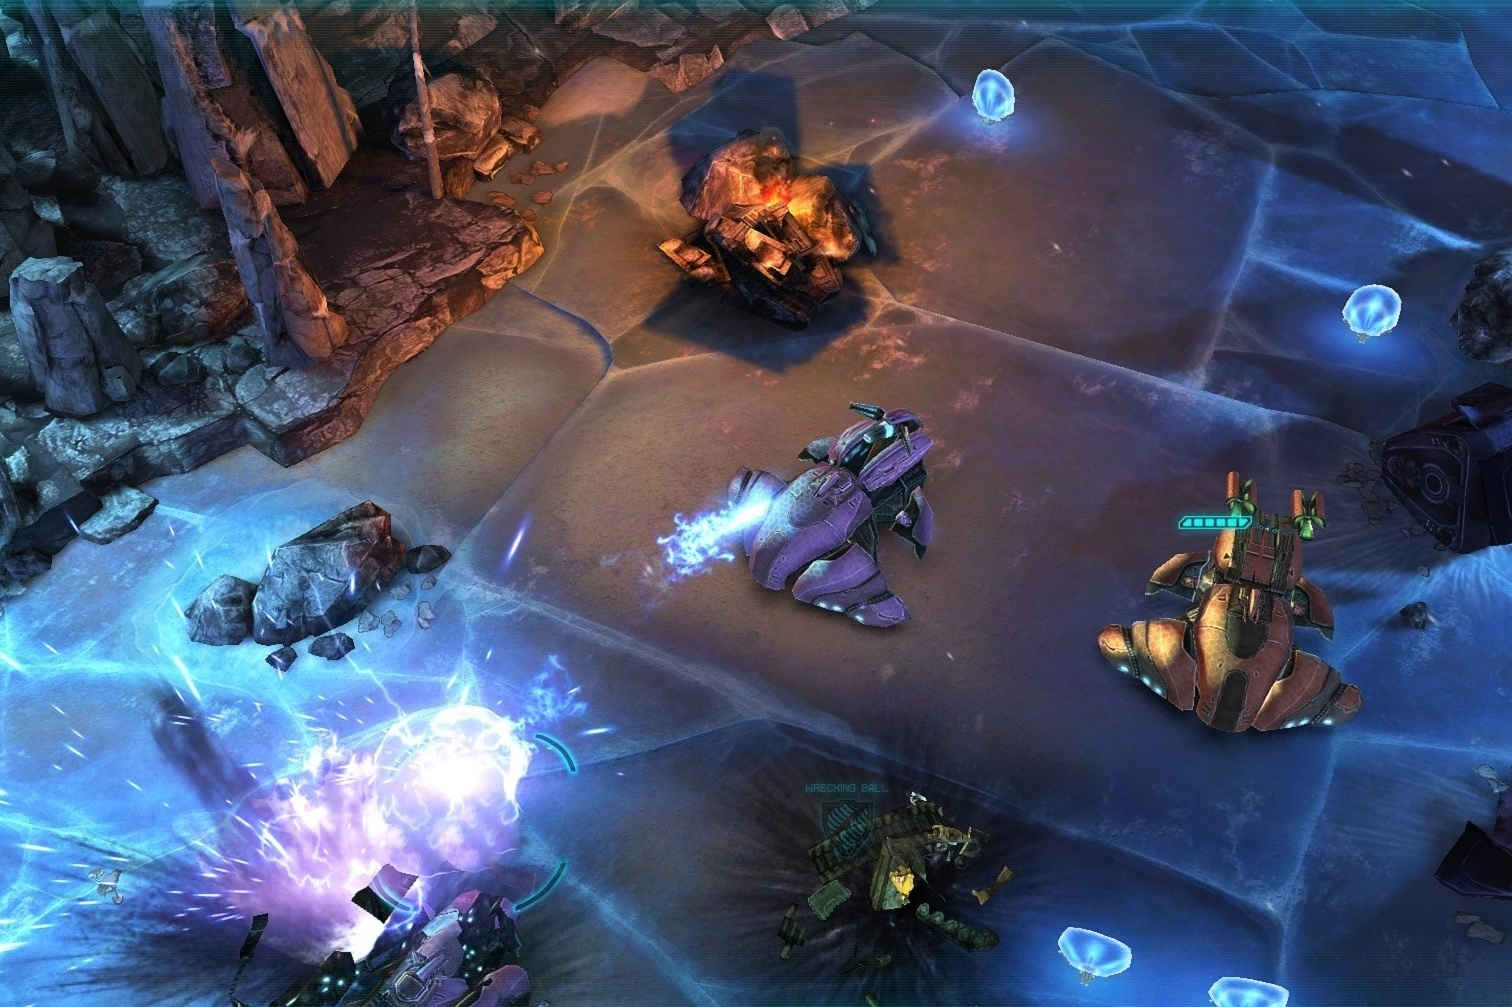 Modojo | Halo: Spartan Assault Announced By 343 Industries